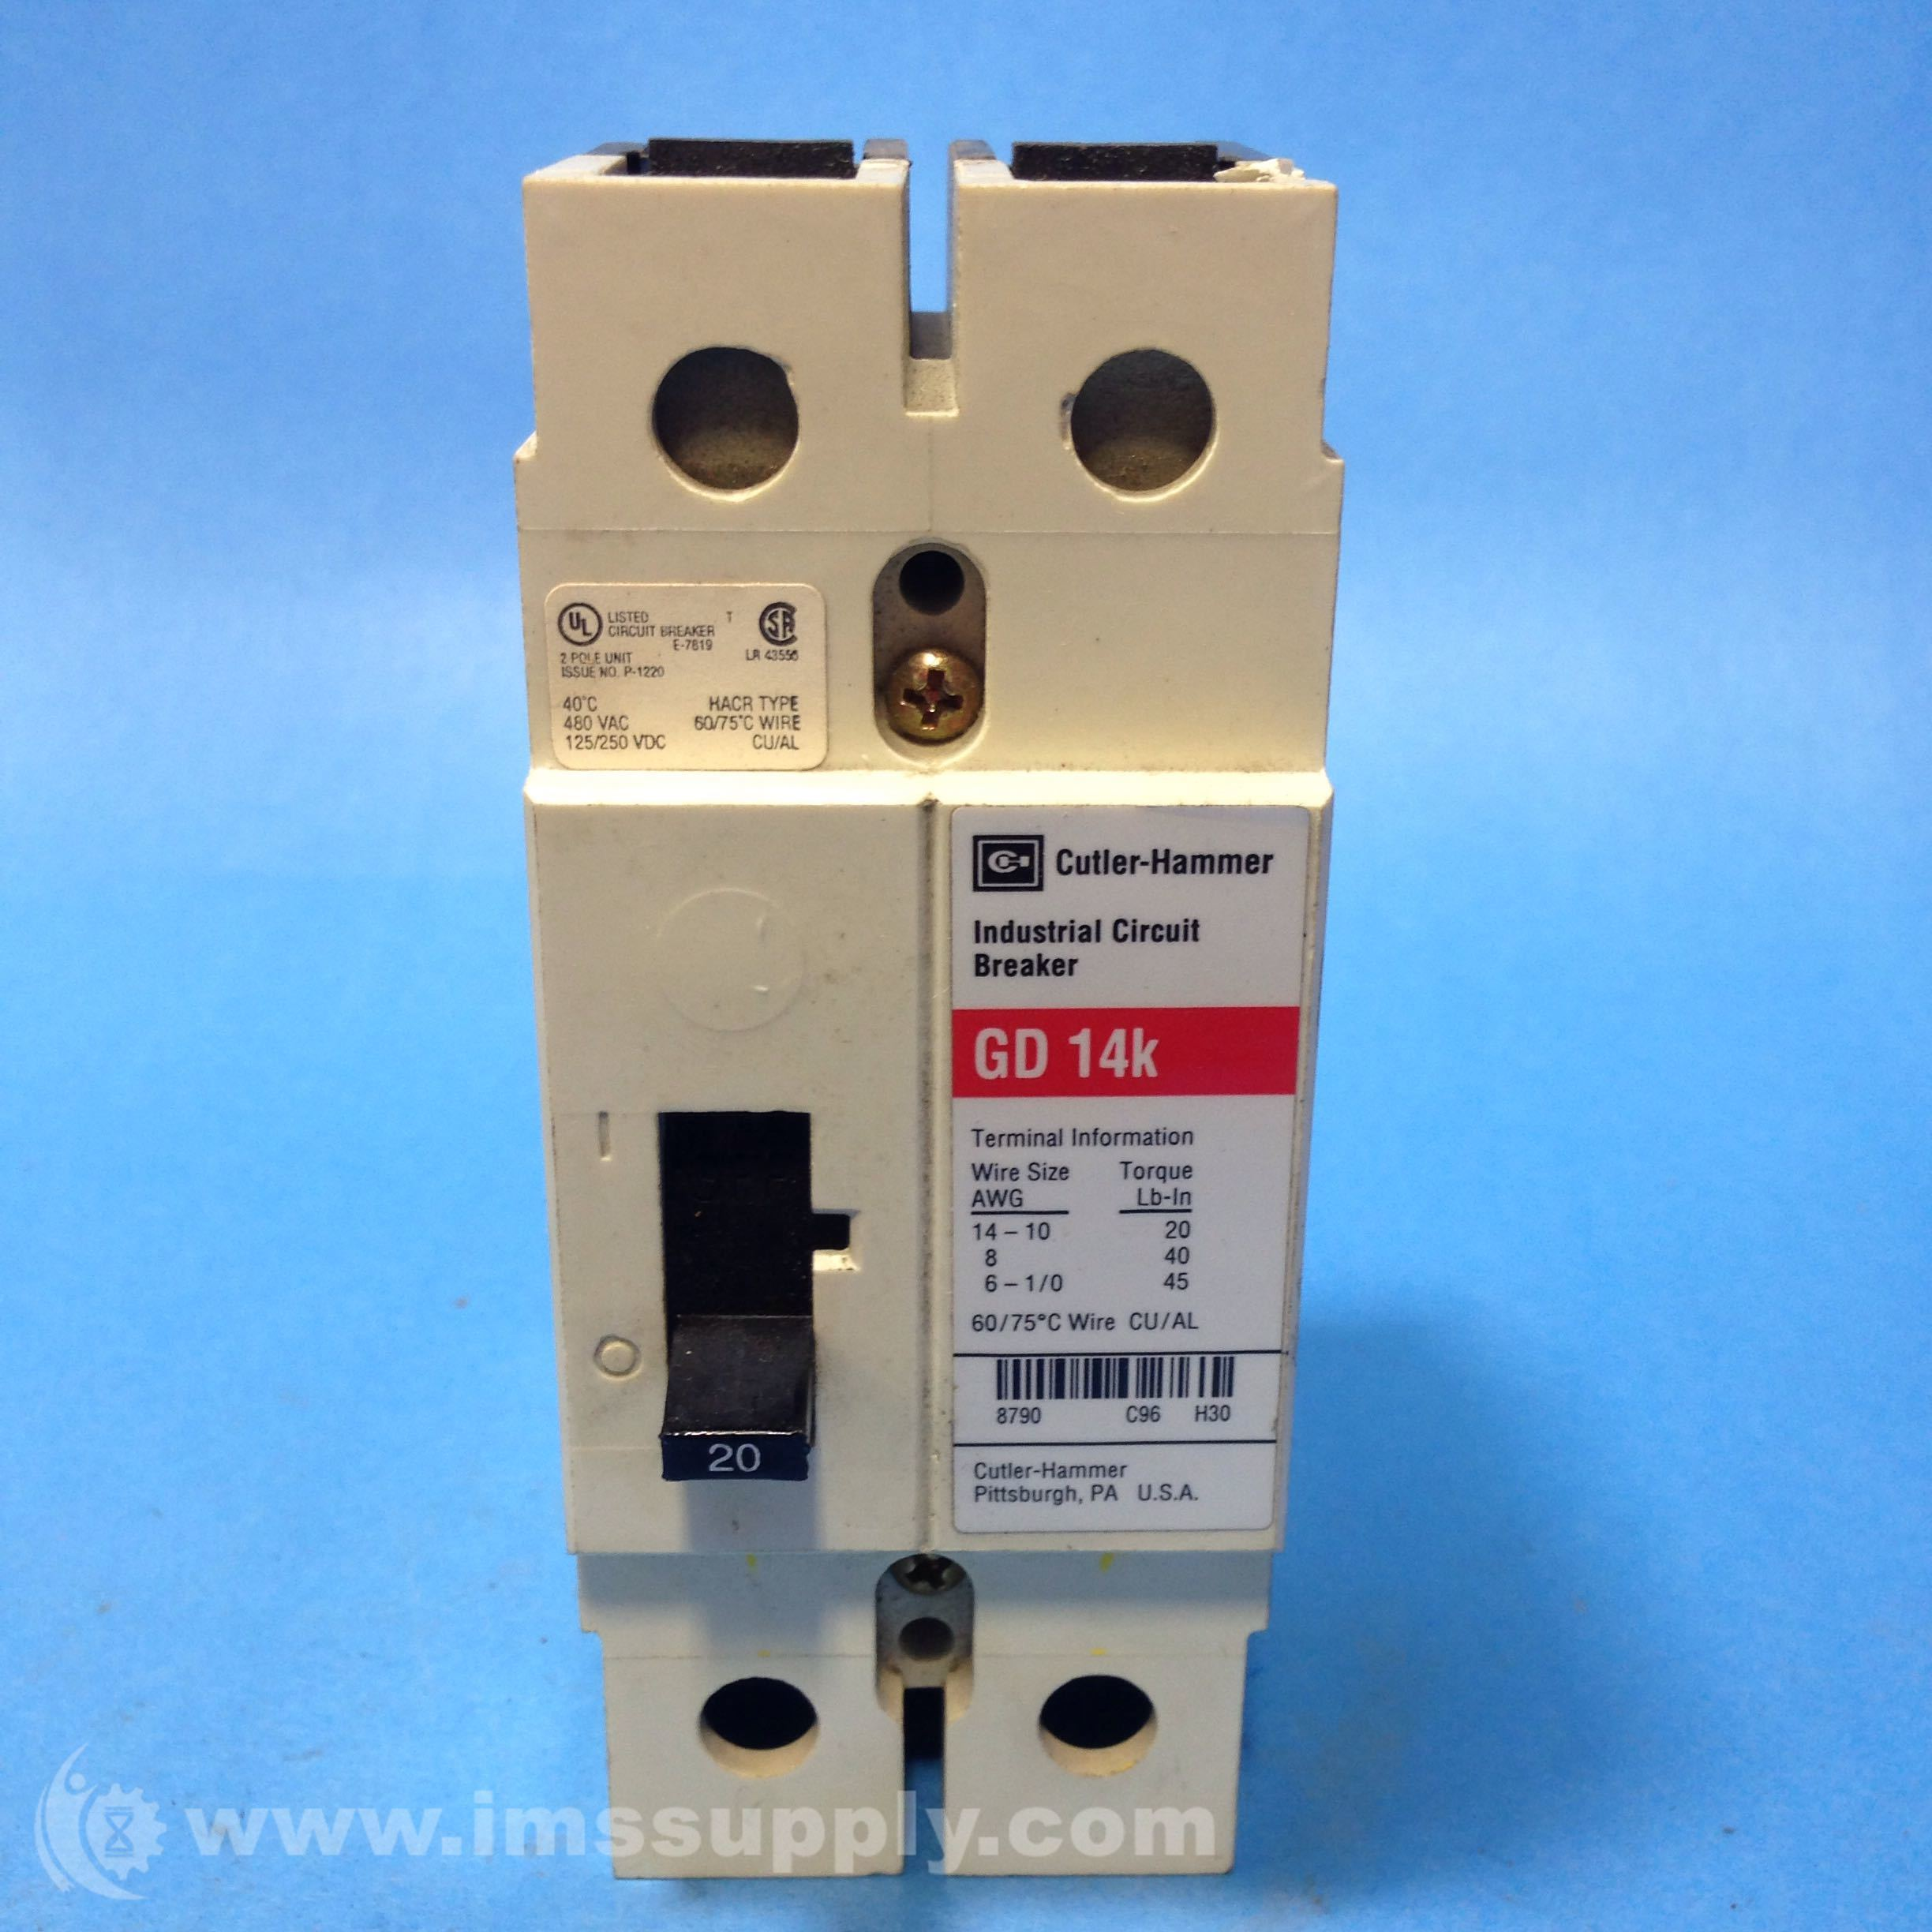 Cutler Hammer Gd 14k Industrial Circuit Breaker Ims Supply Fuse Box More Views